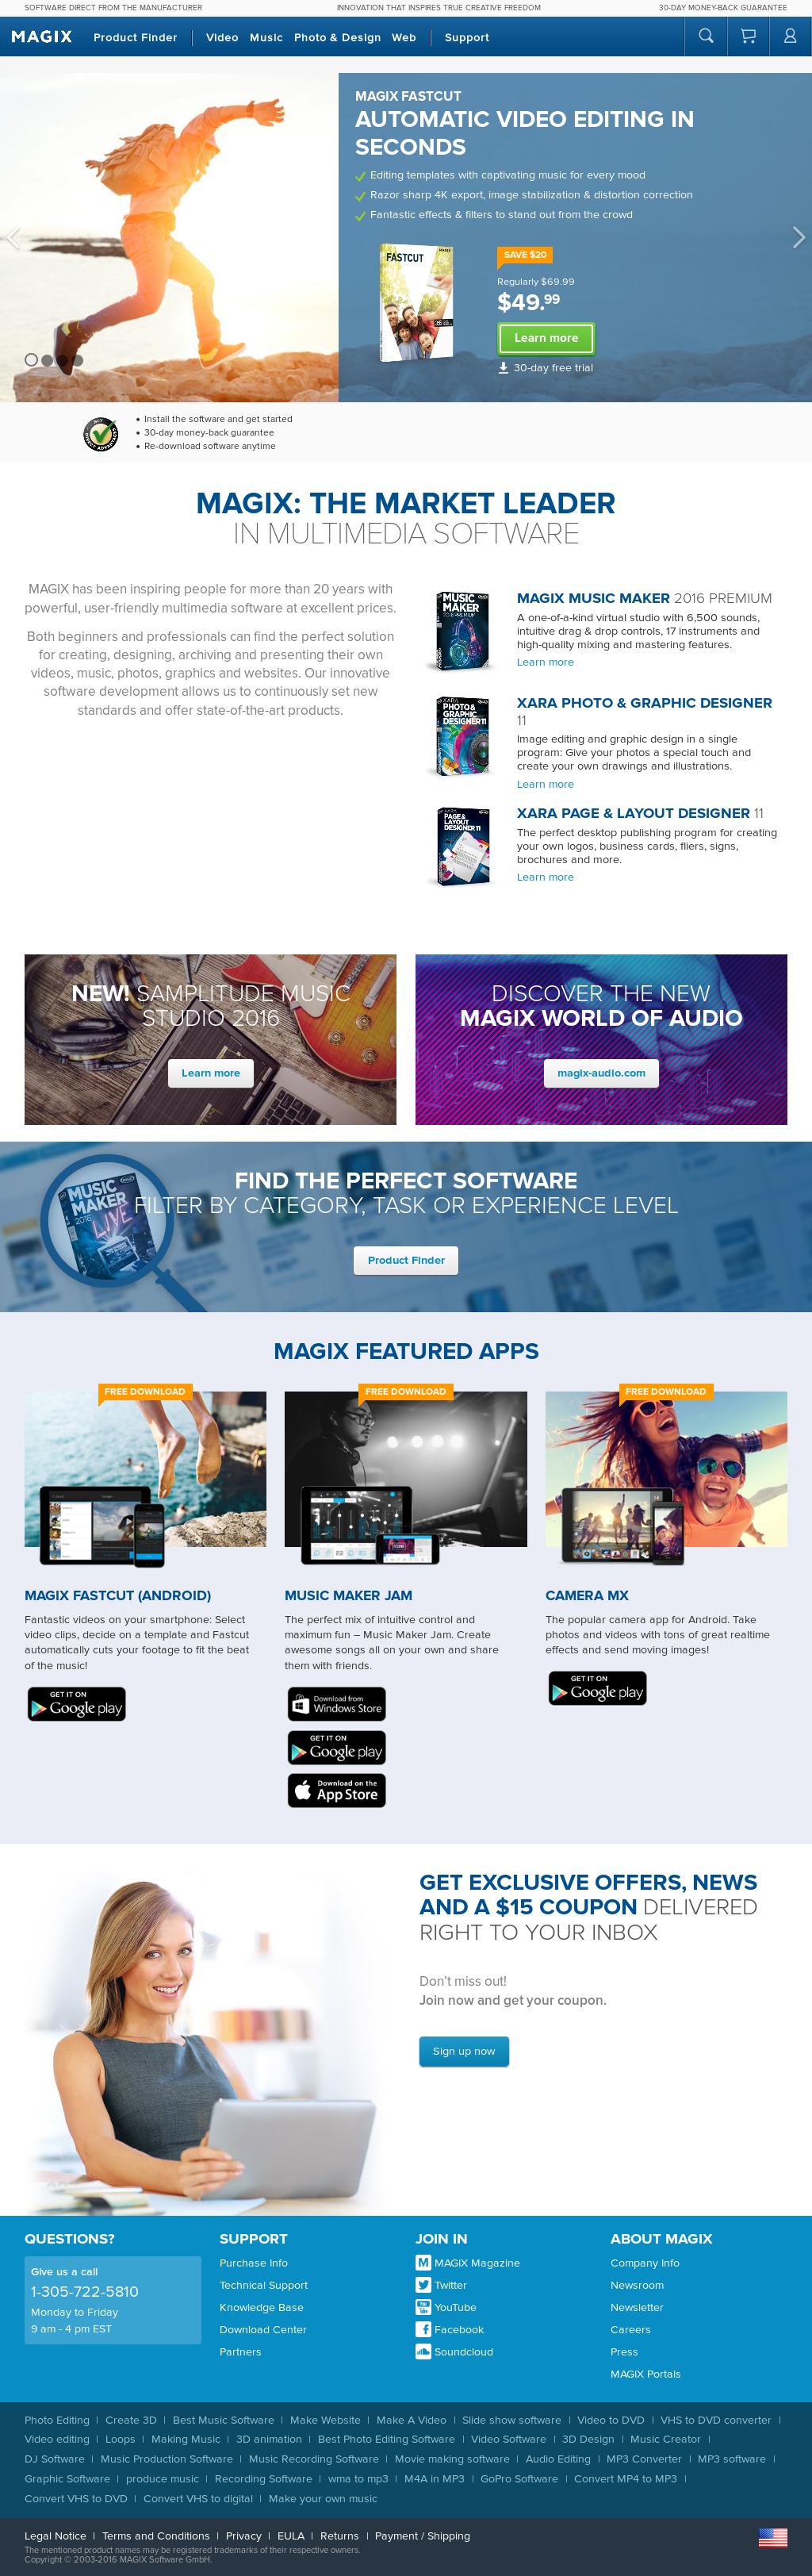 Magix Software GmbH Competitors, Revenue and Employees - Owler